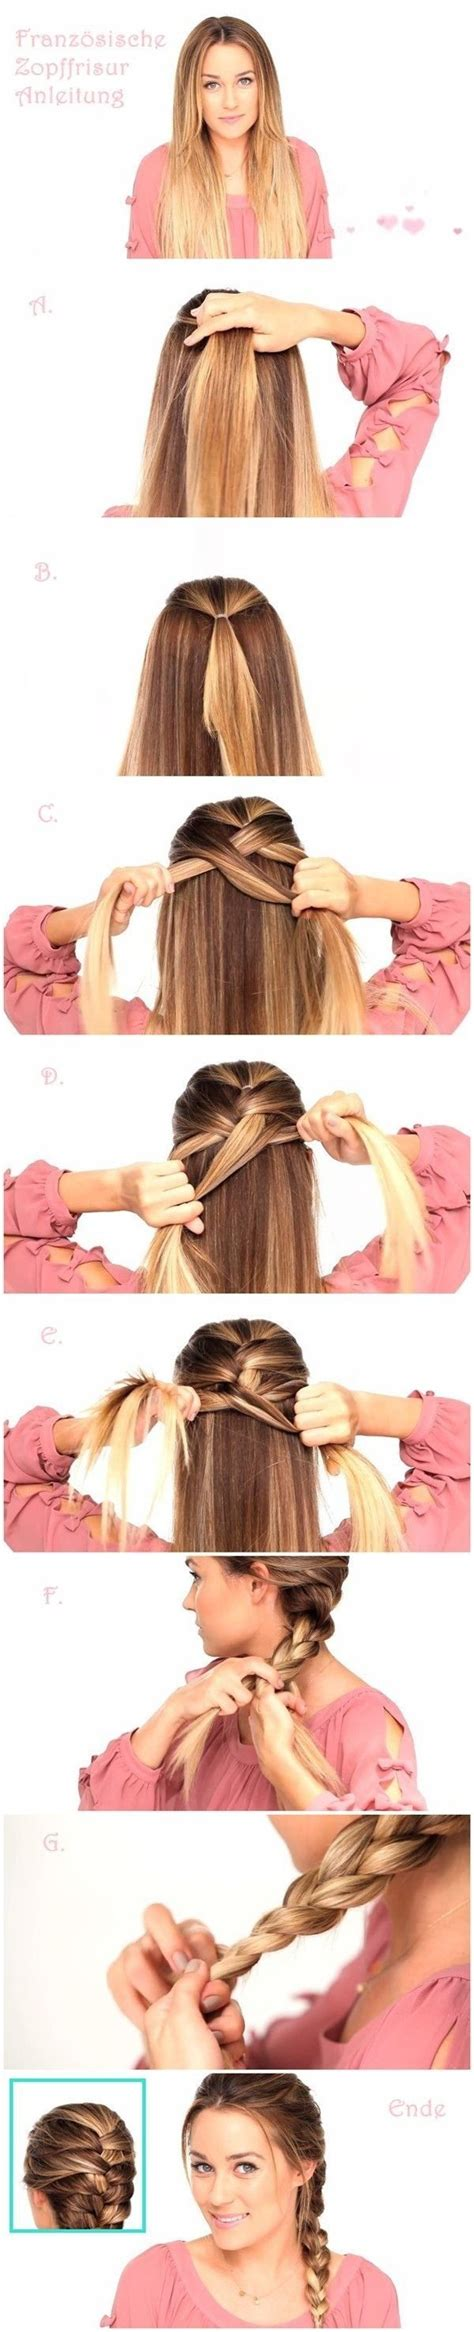 how to 1940s style women french braids 10 french braids hairstyles tutorials everyday hair